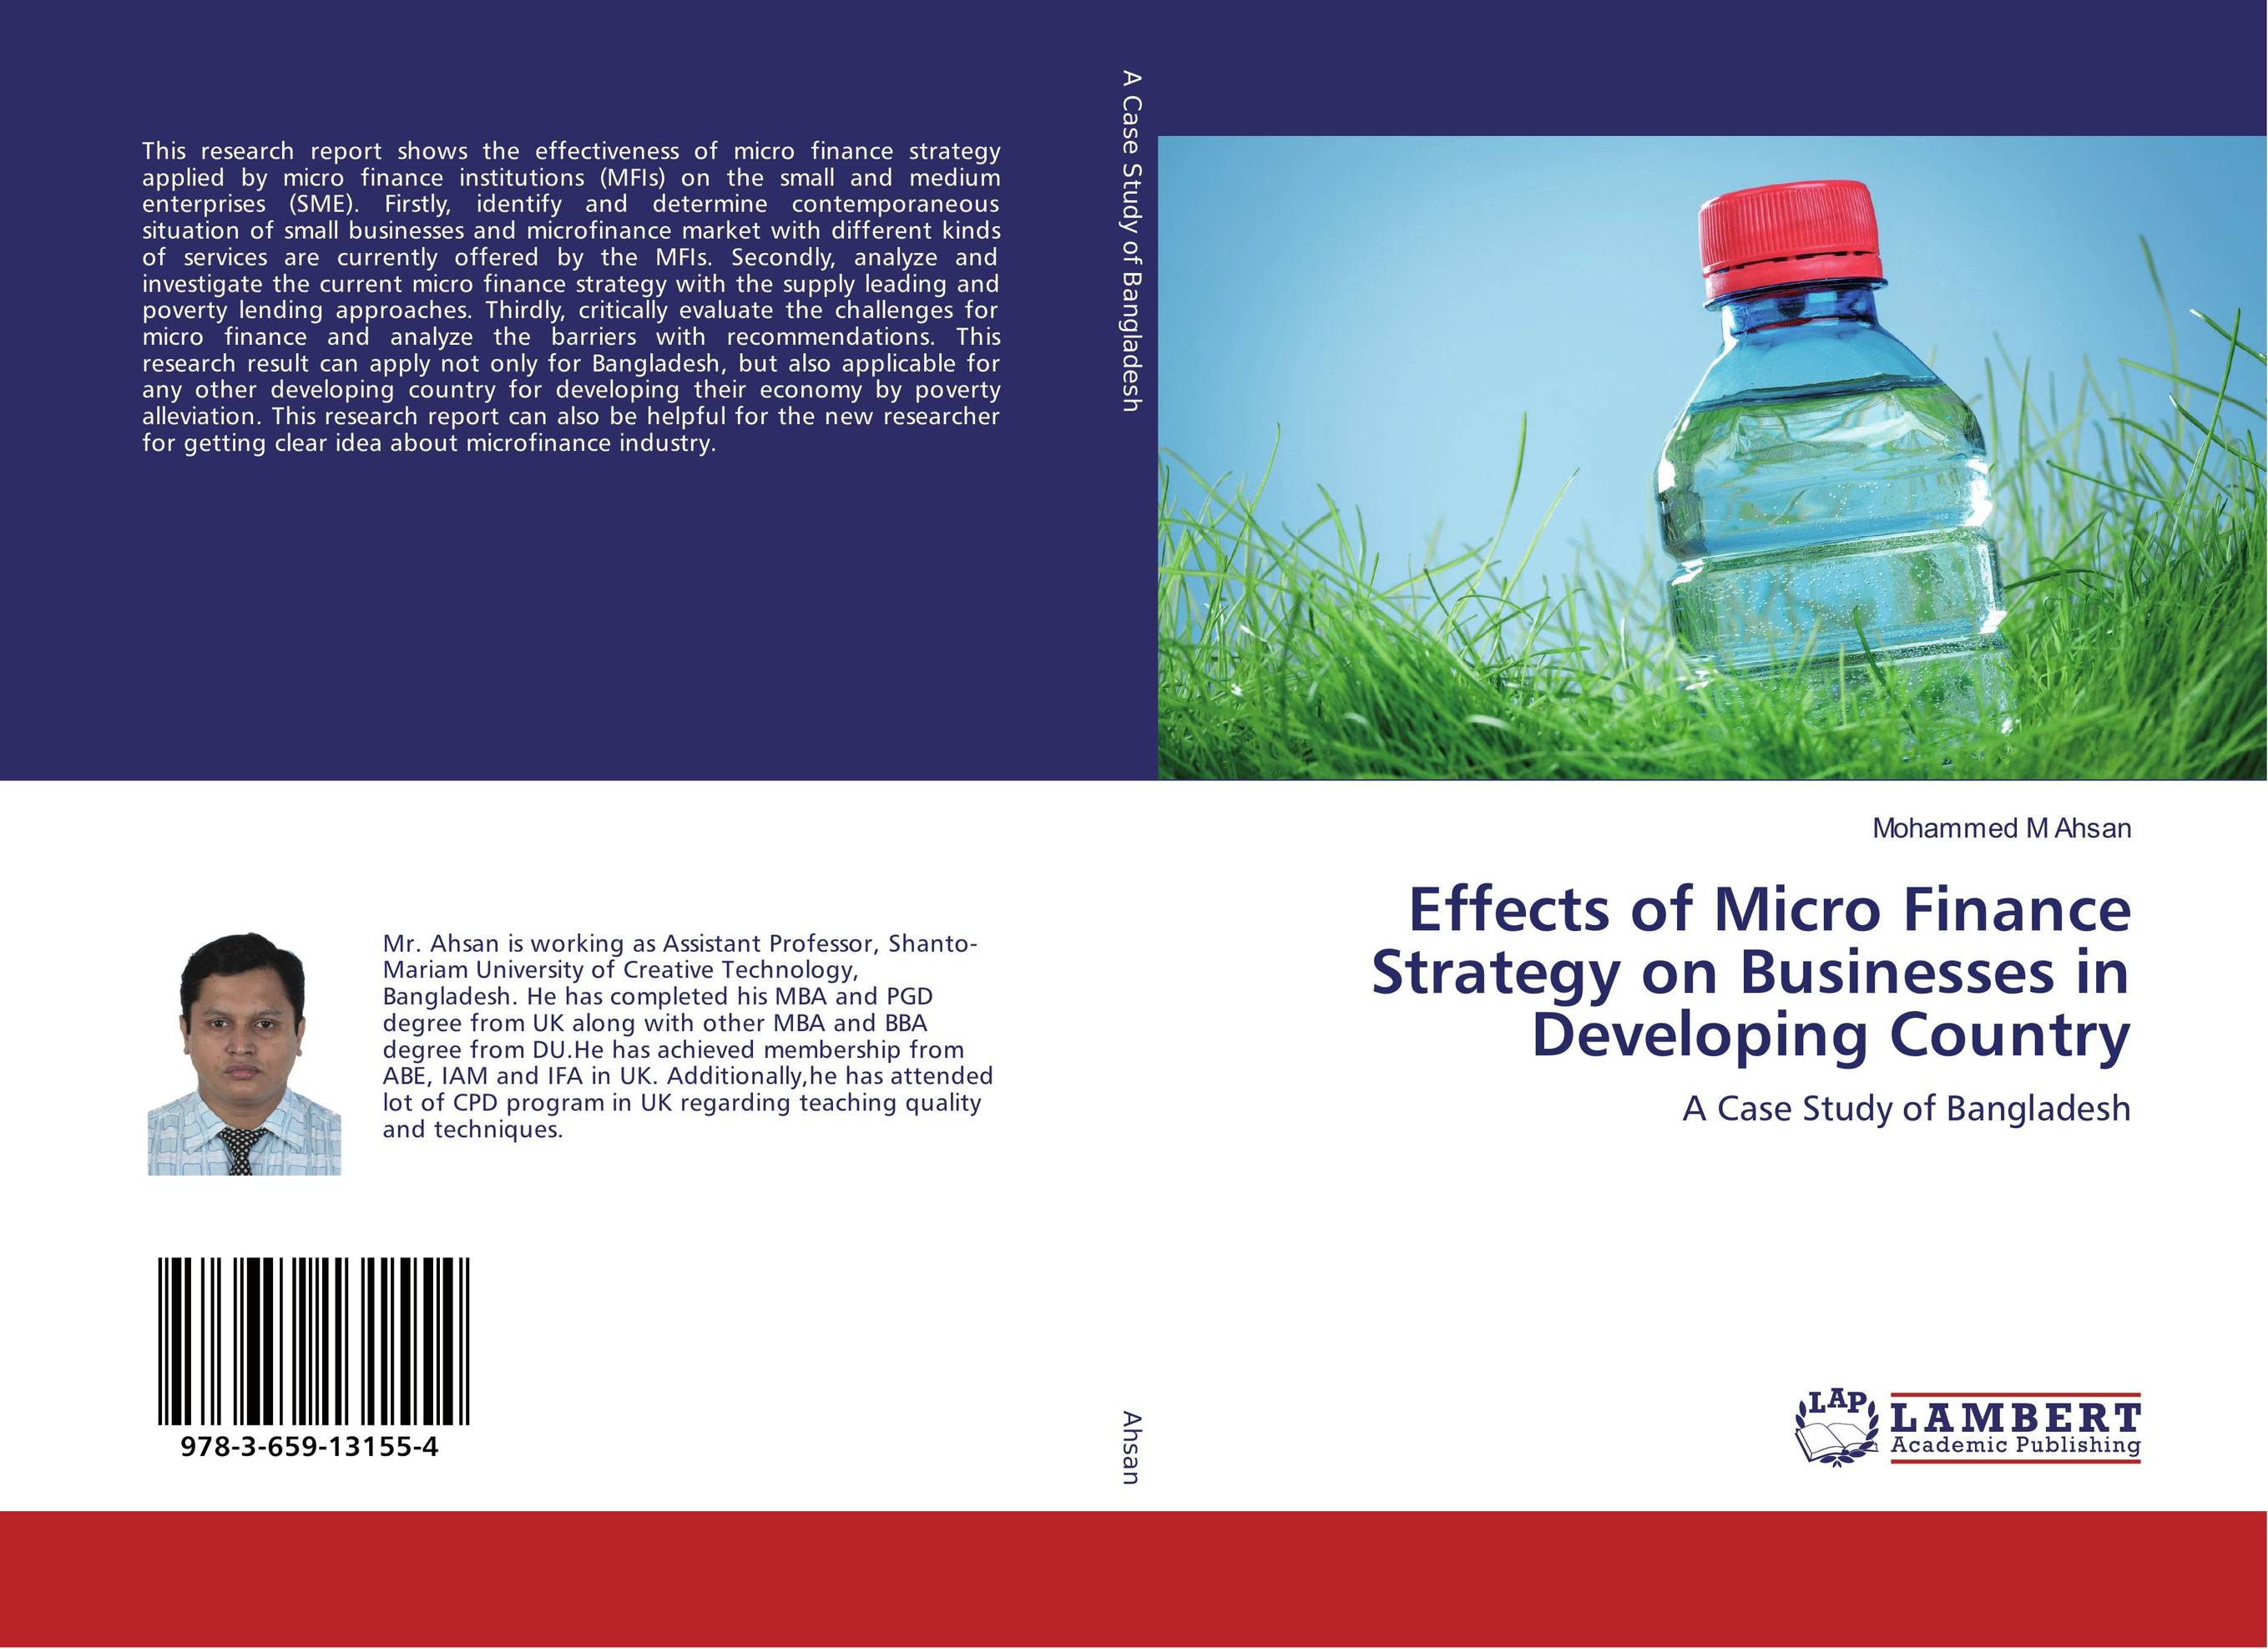 Effects of Micro Finance Strategy on Businesses in Developing Country jaynal ud din ahmed and mohd abdul rashid institutional finance for micro and small entreprises in india